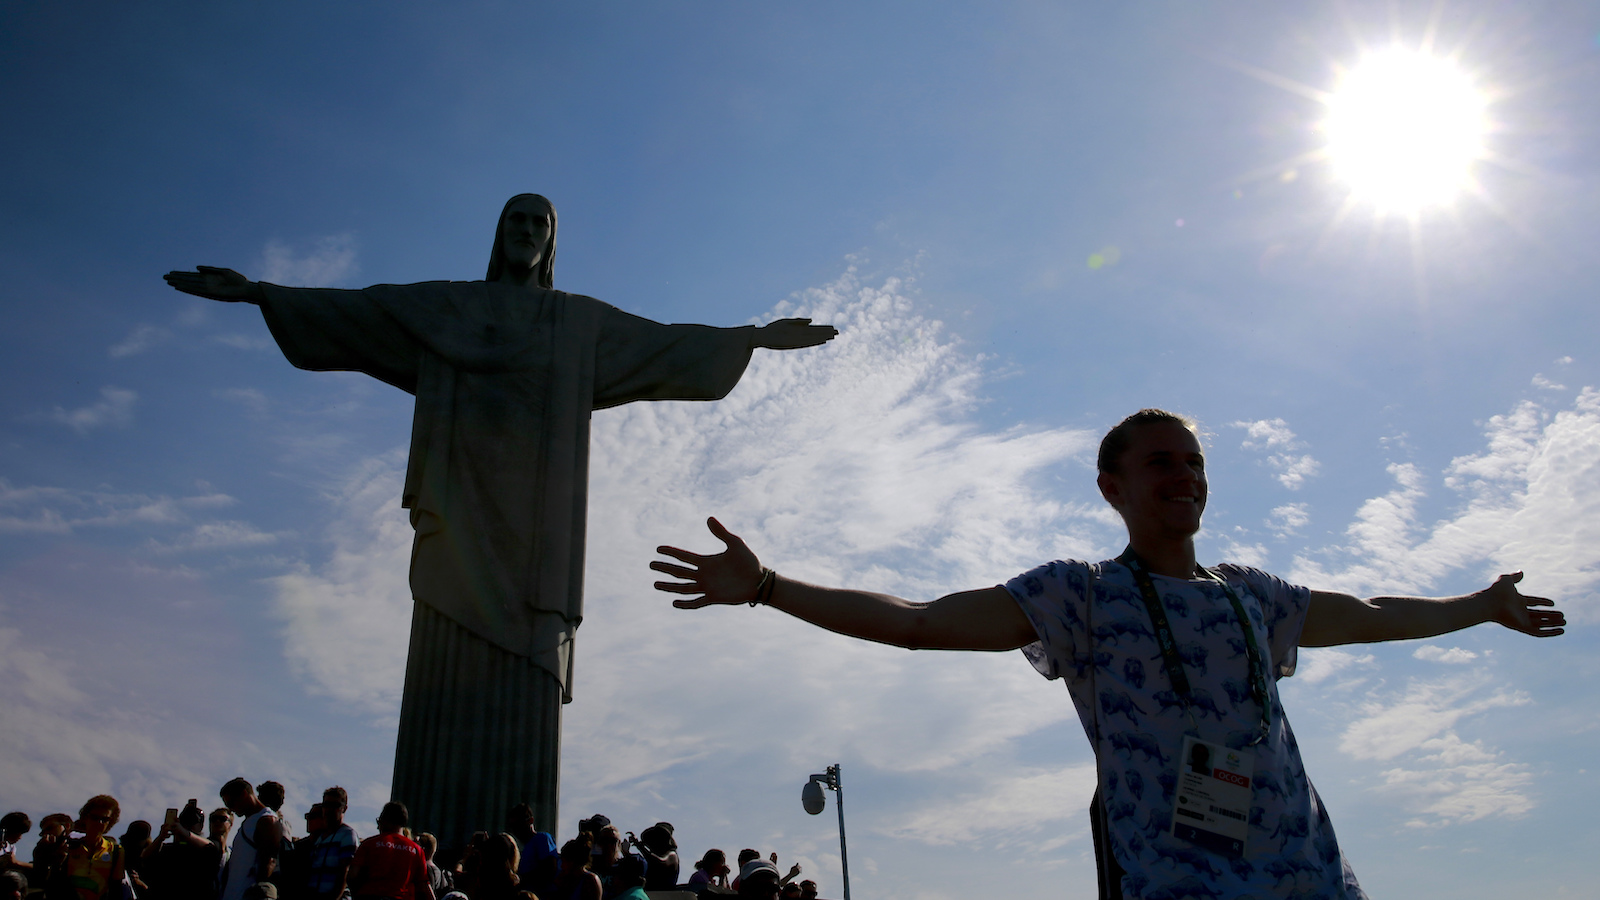 A tourist poses in front the Christ the Redeemer statue during the 2016 Summer Olympics in Rio de Janeiro, Brazil, Tuesday, Aug. 16, 2016. (AP Photo/Hassan Ammar)